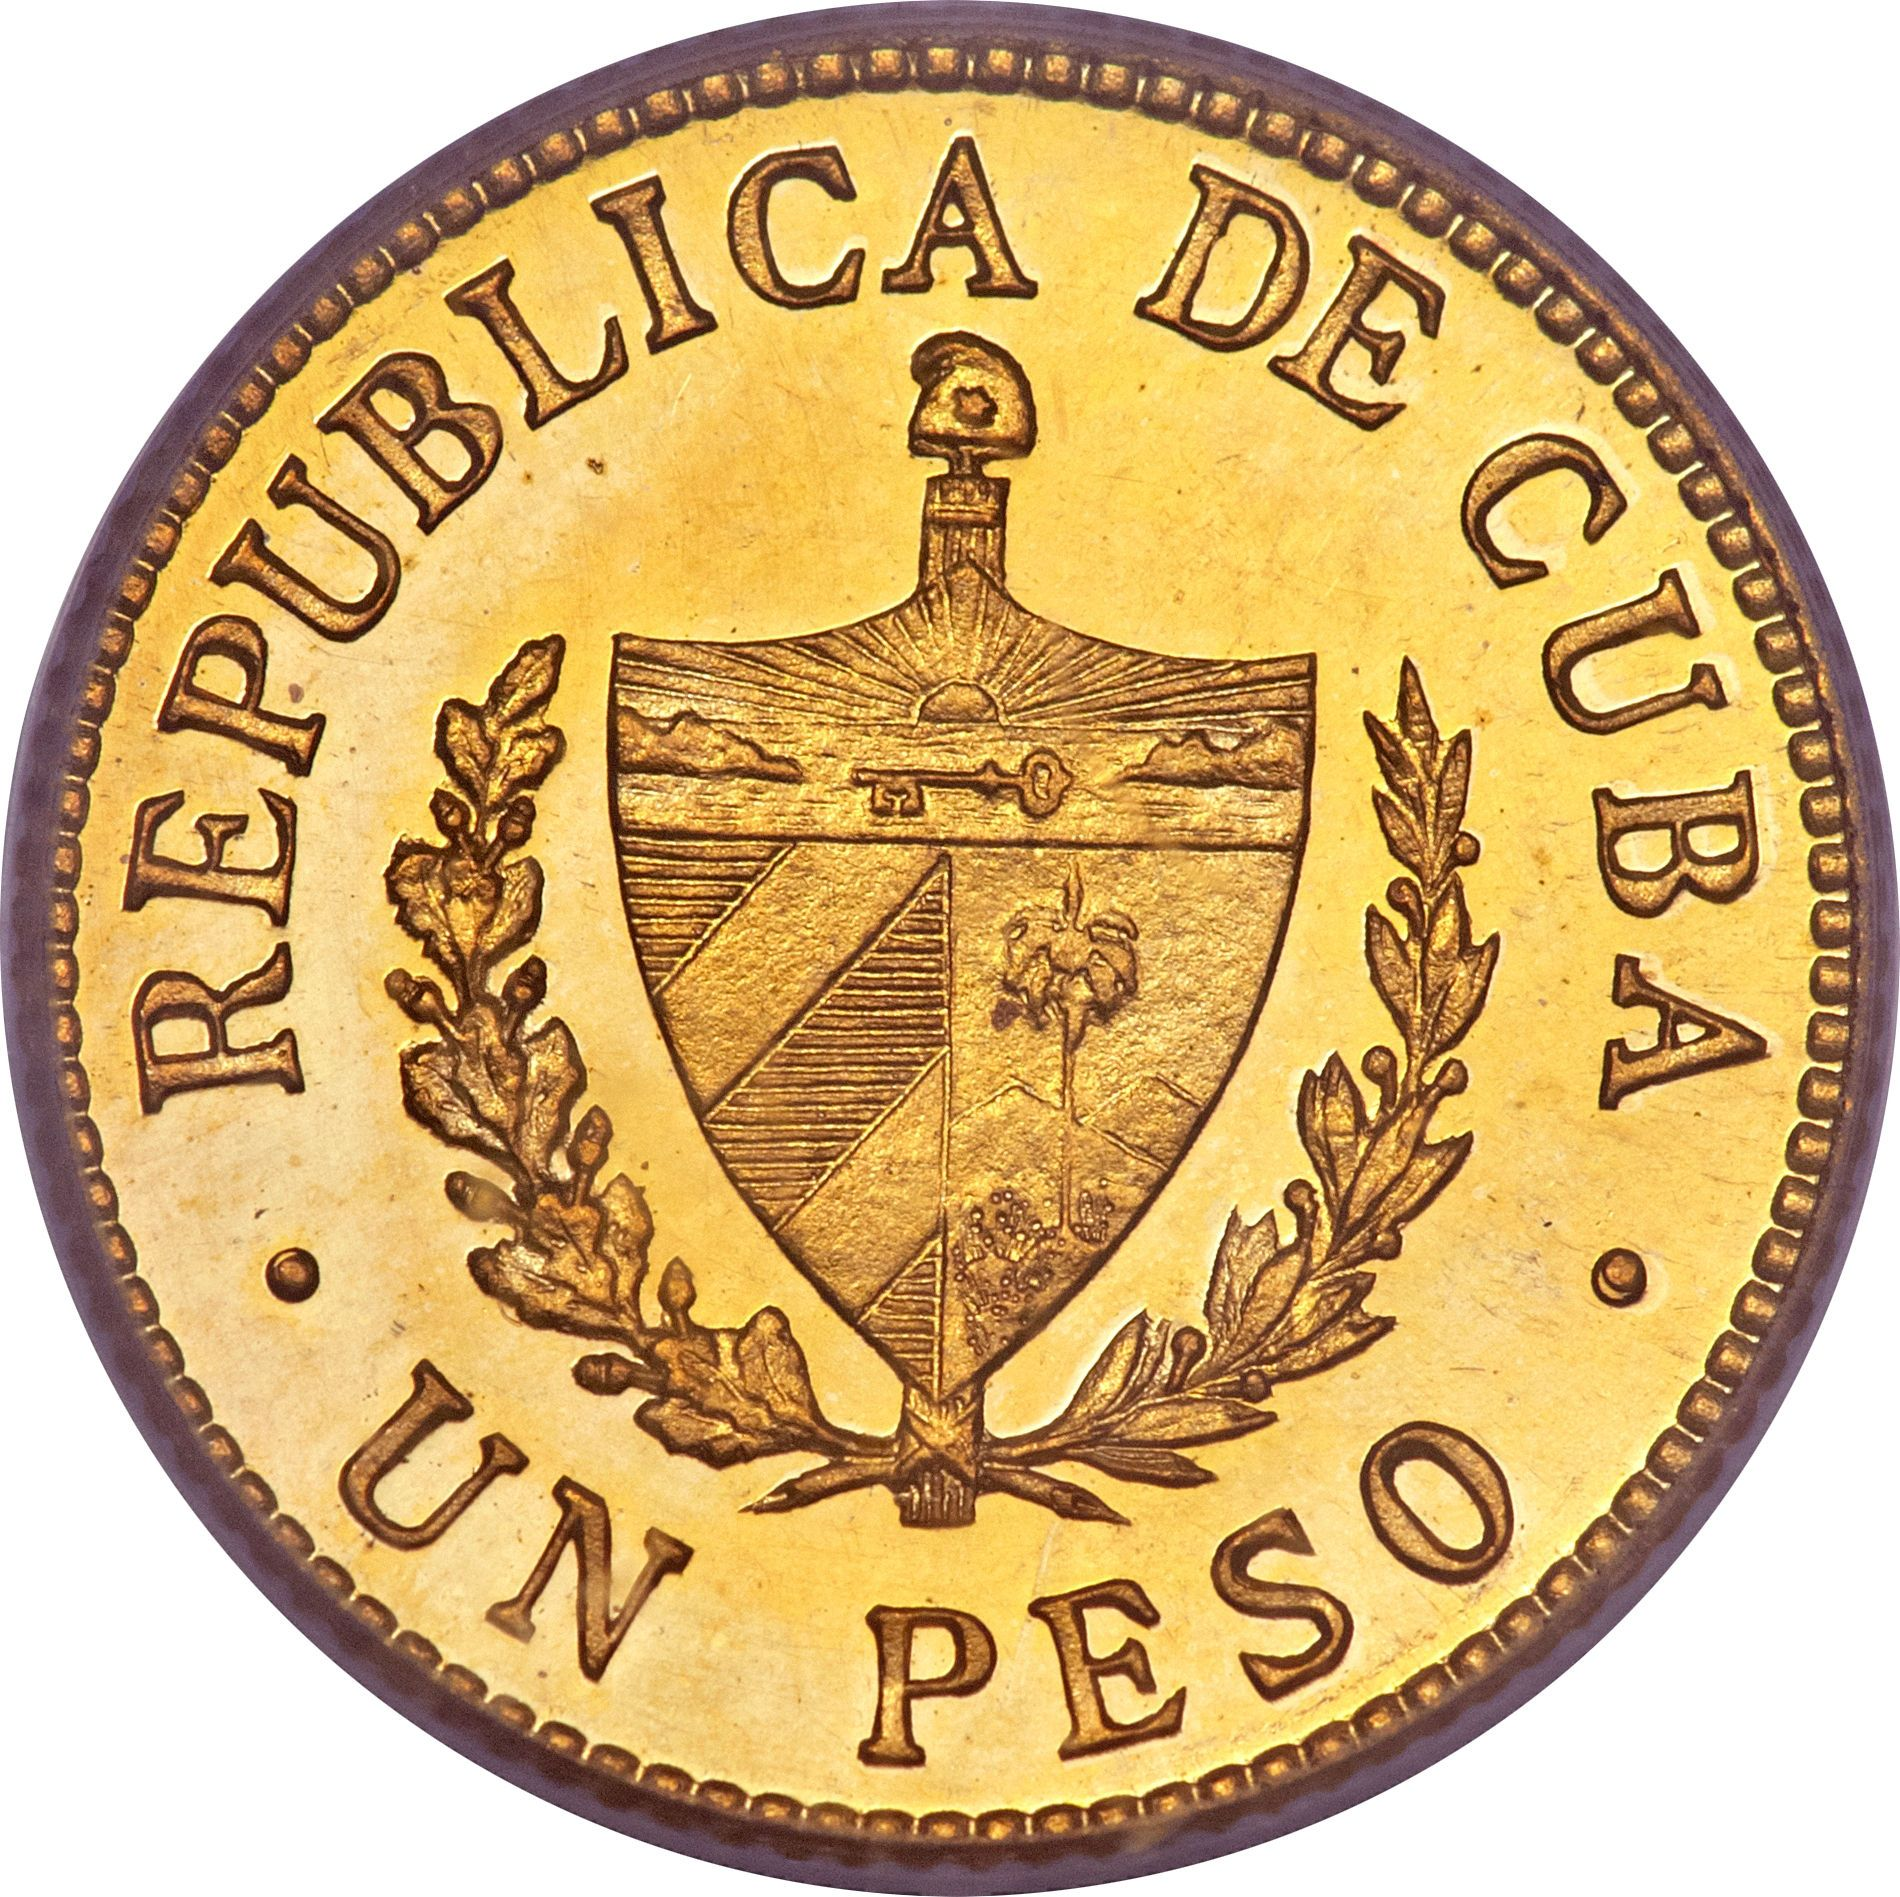 1 Peso Jos Mart Cuba Numista Paper Money Coins From